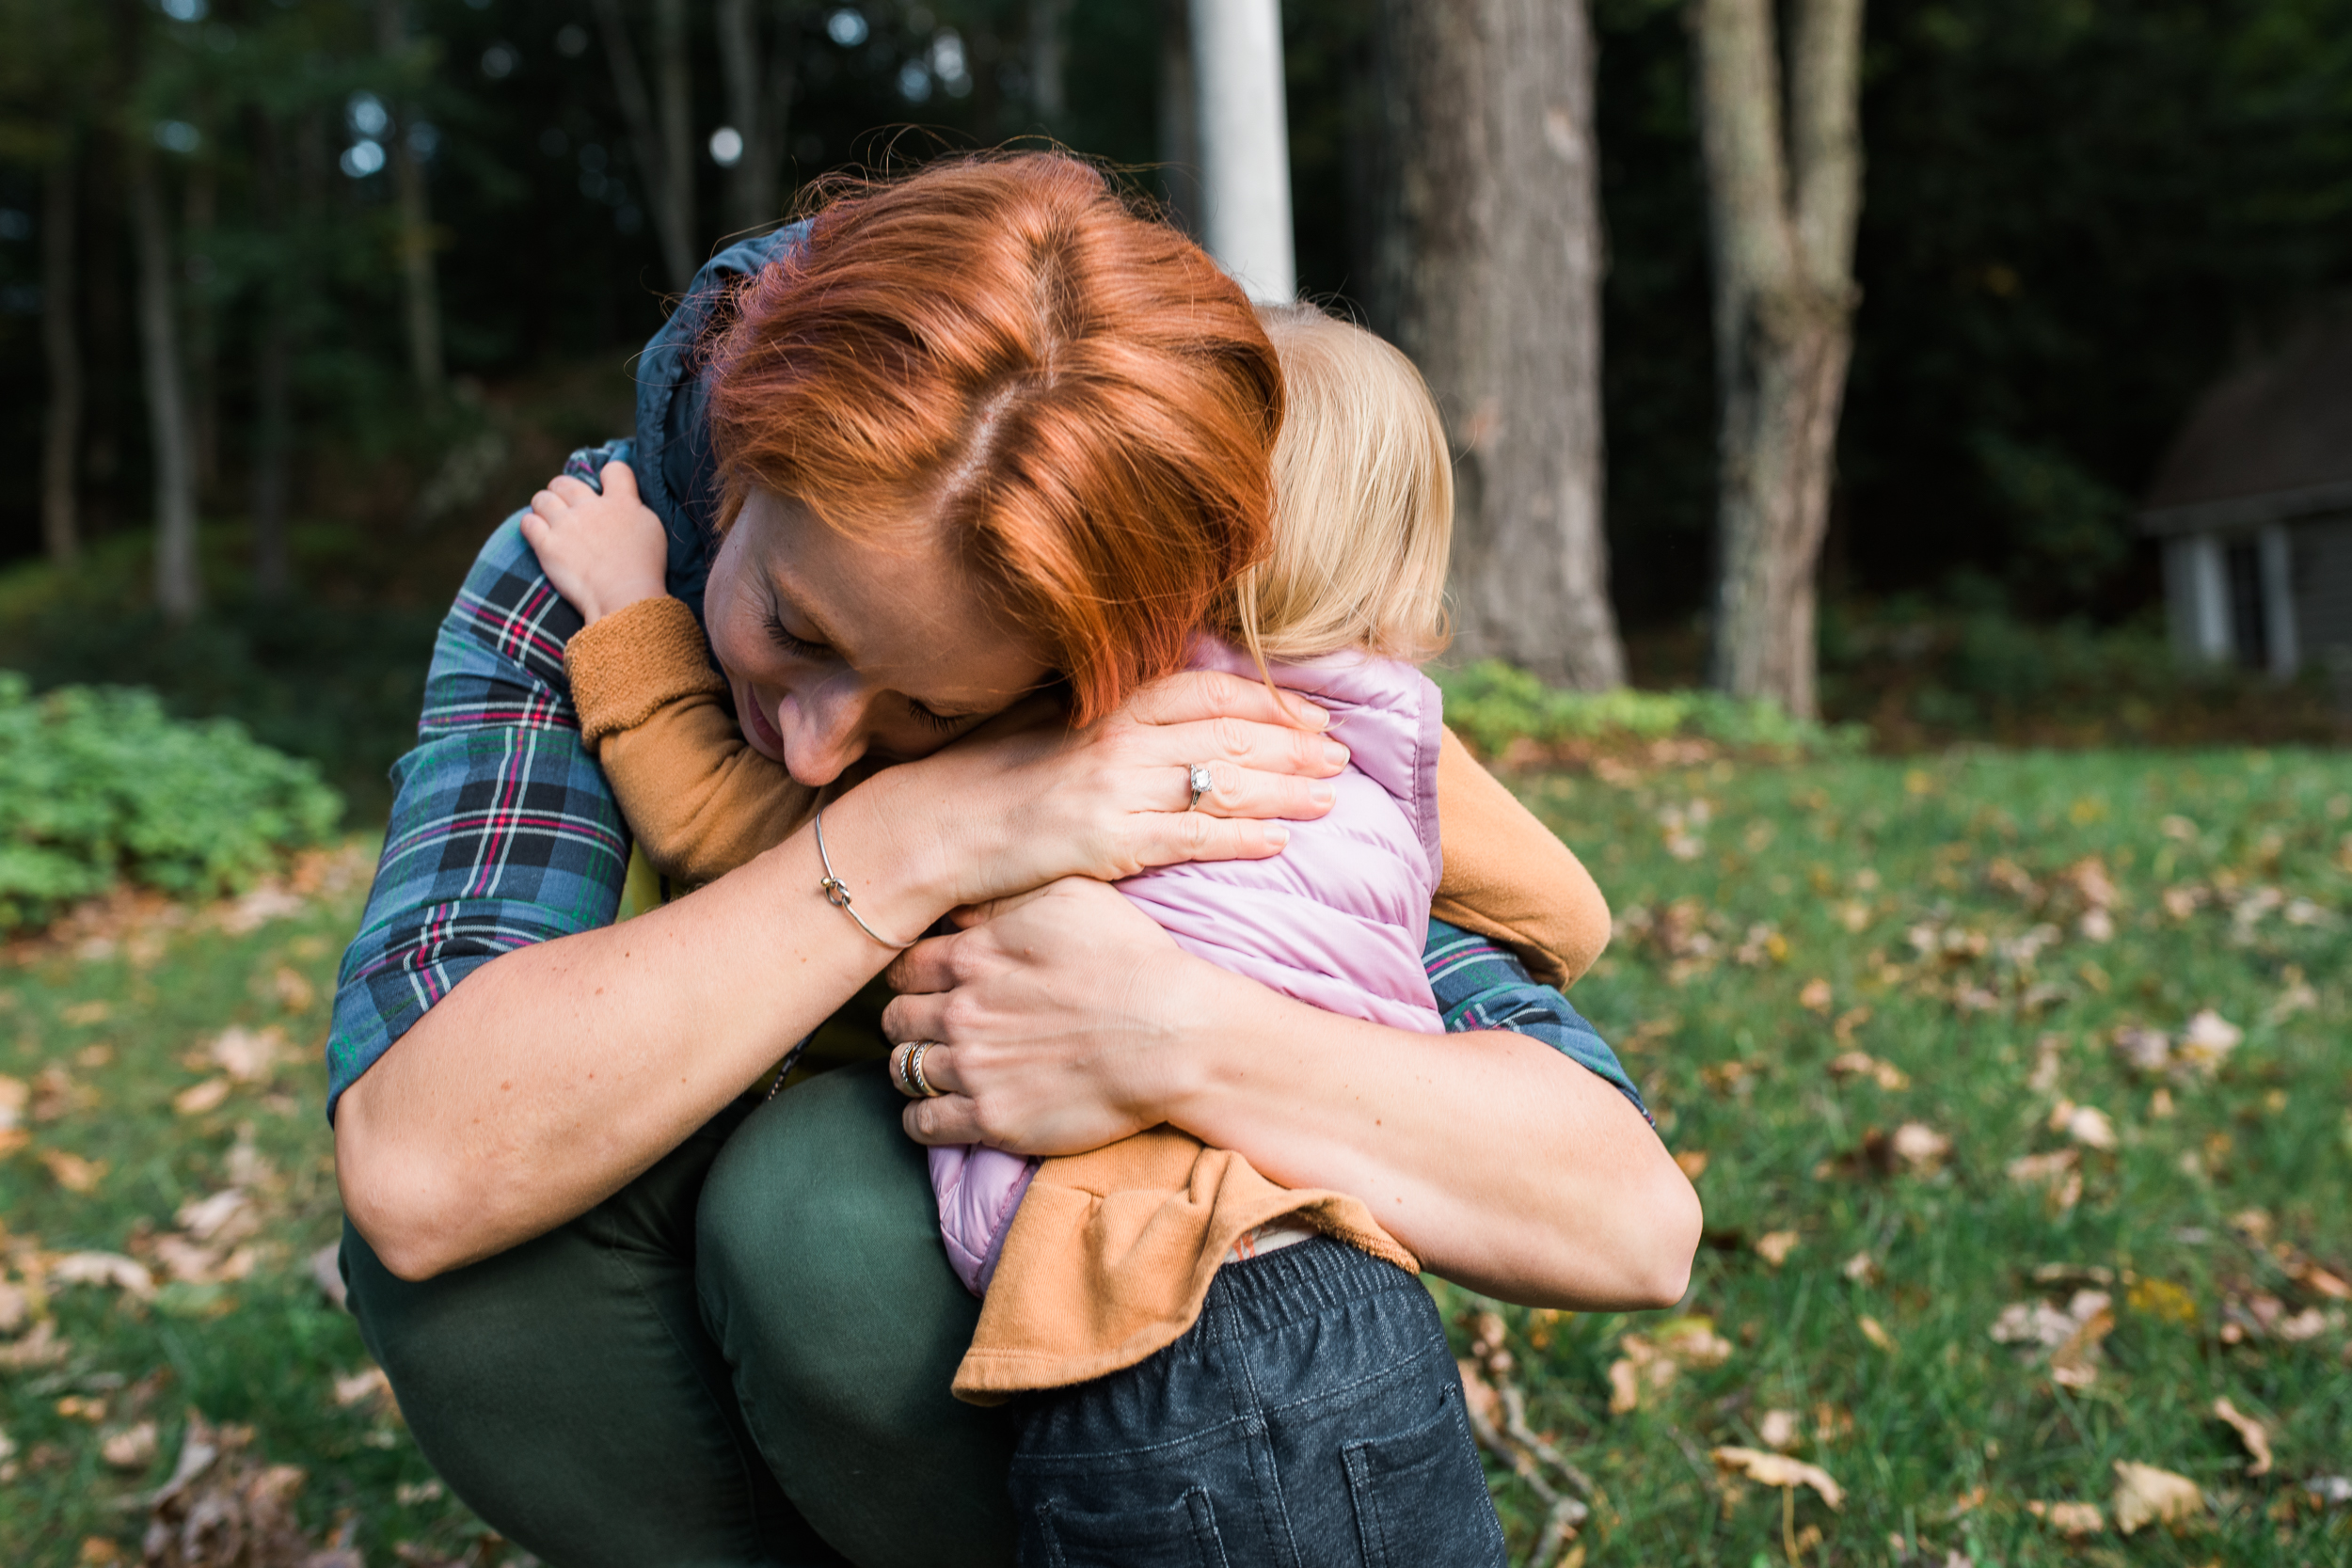 redhead mother hugging daughter family photo session by Lindsey Victoria Photography in Washington Connecticut